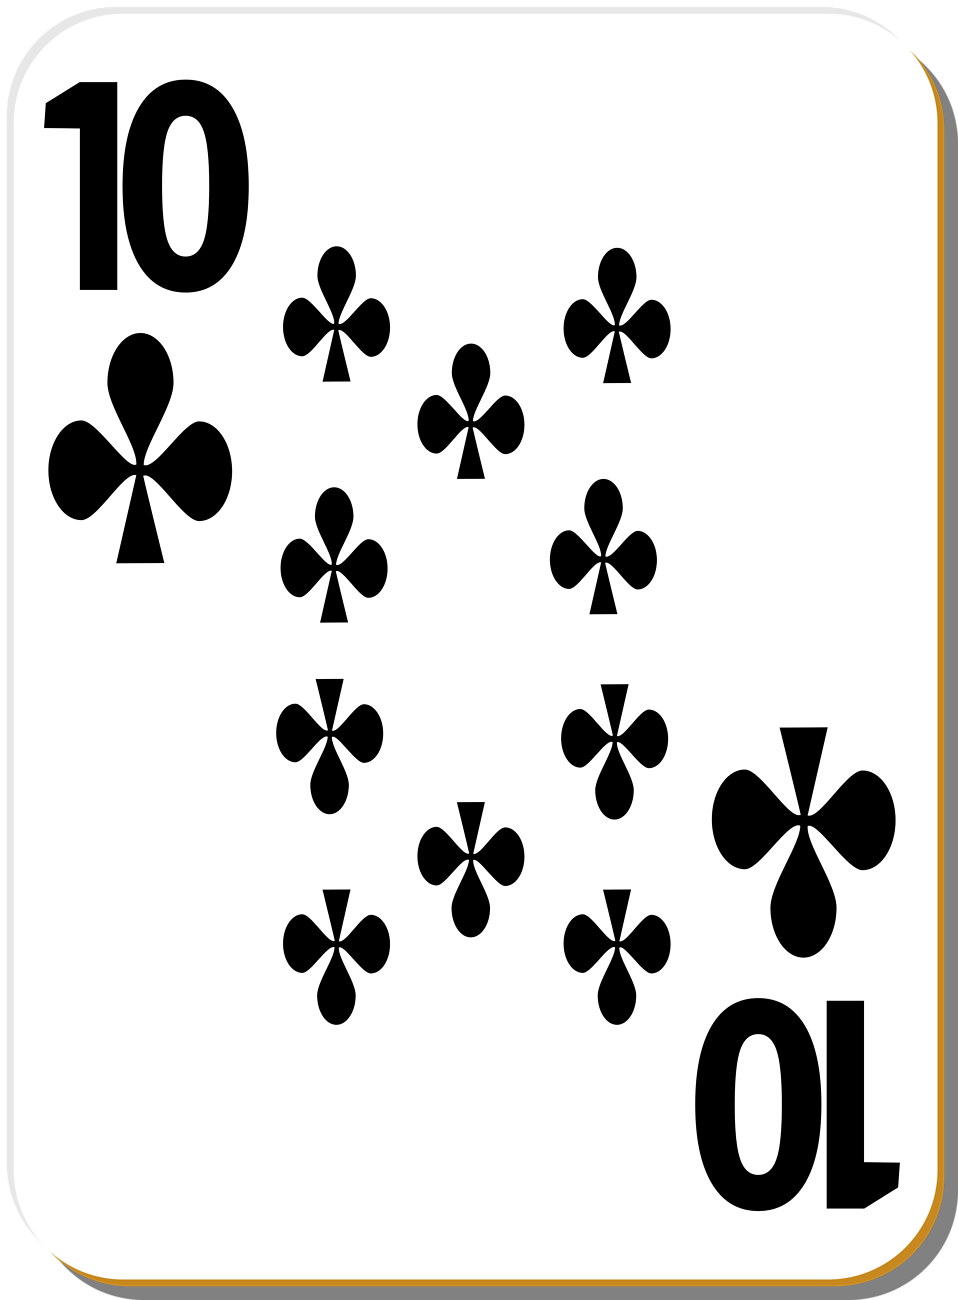 Illustration of a Ten of Clubs playing card : Free Stock Photo